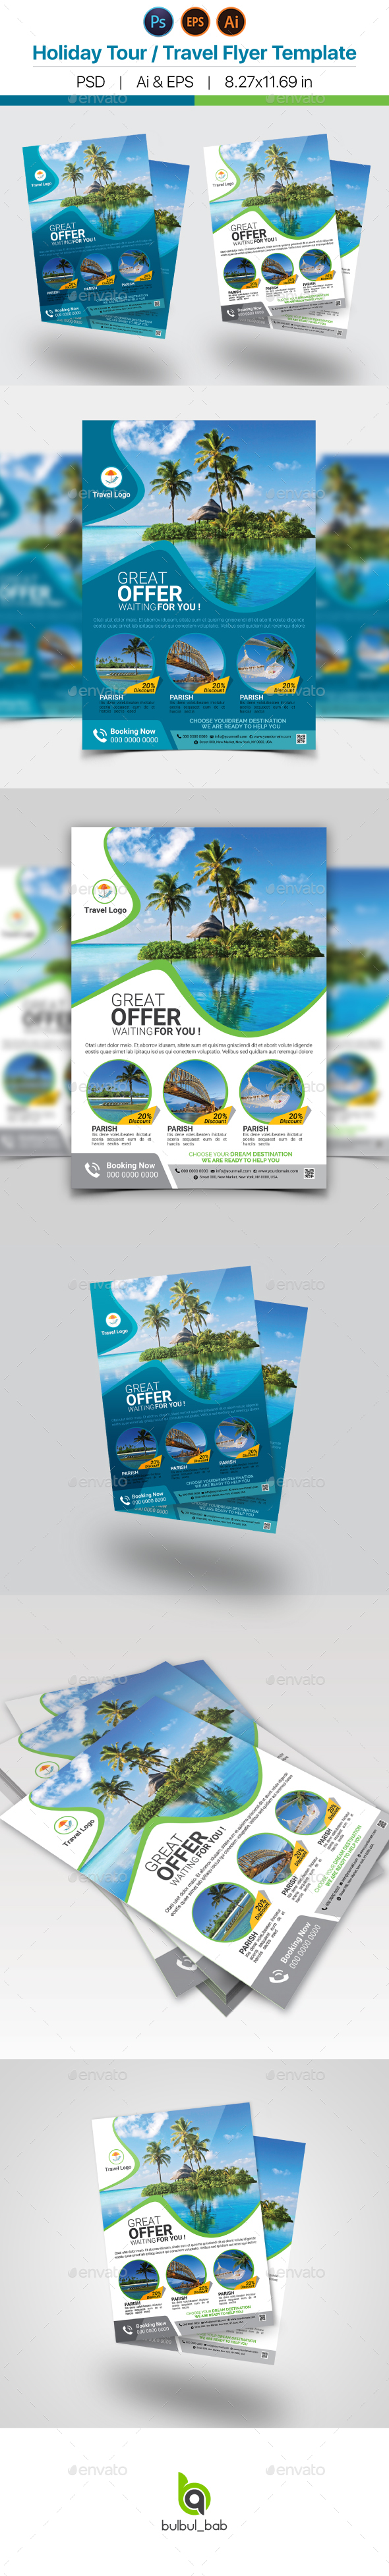 Holiday Travel / Tour Flyer Template - Holidays Events